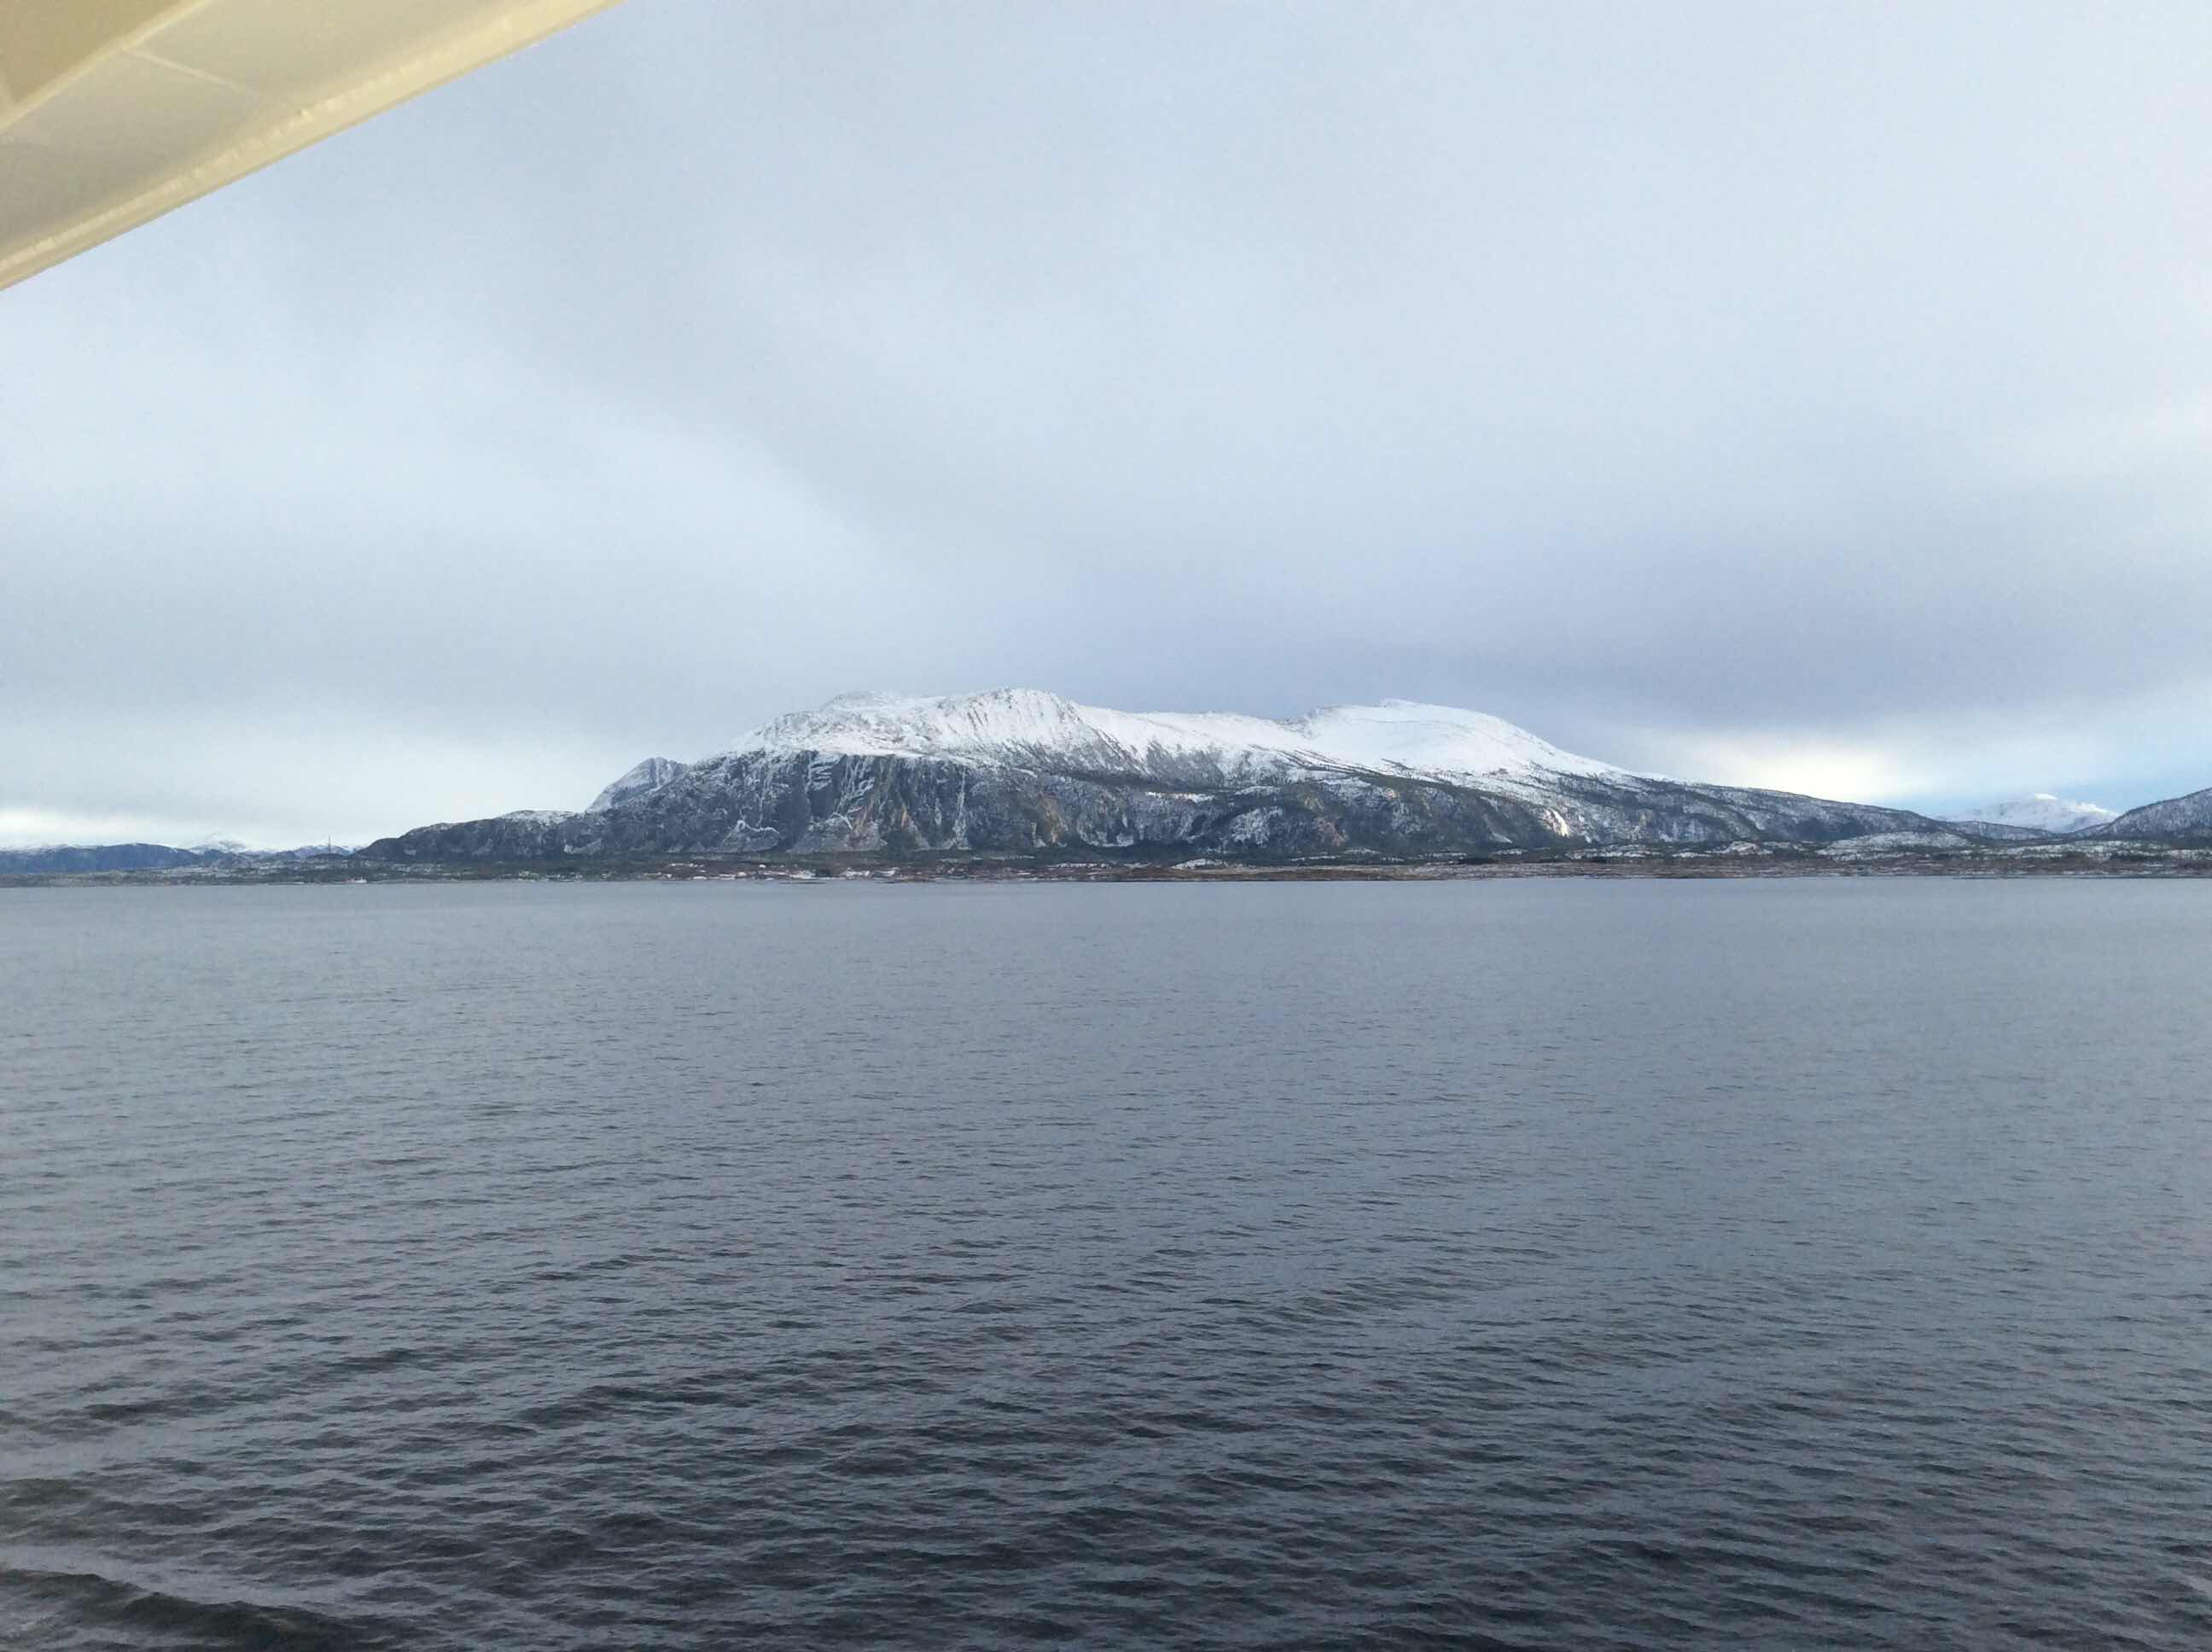 Scenic beauty along the Norwegian coastline aboard the Viking Sky